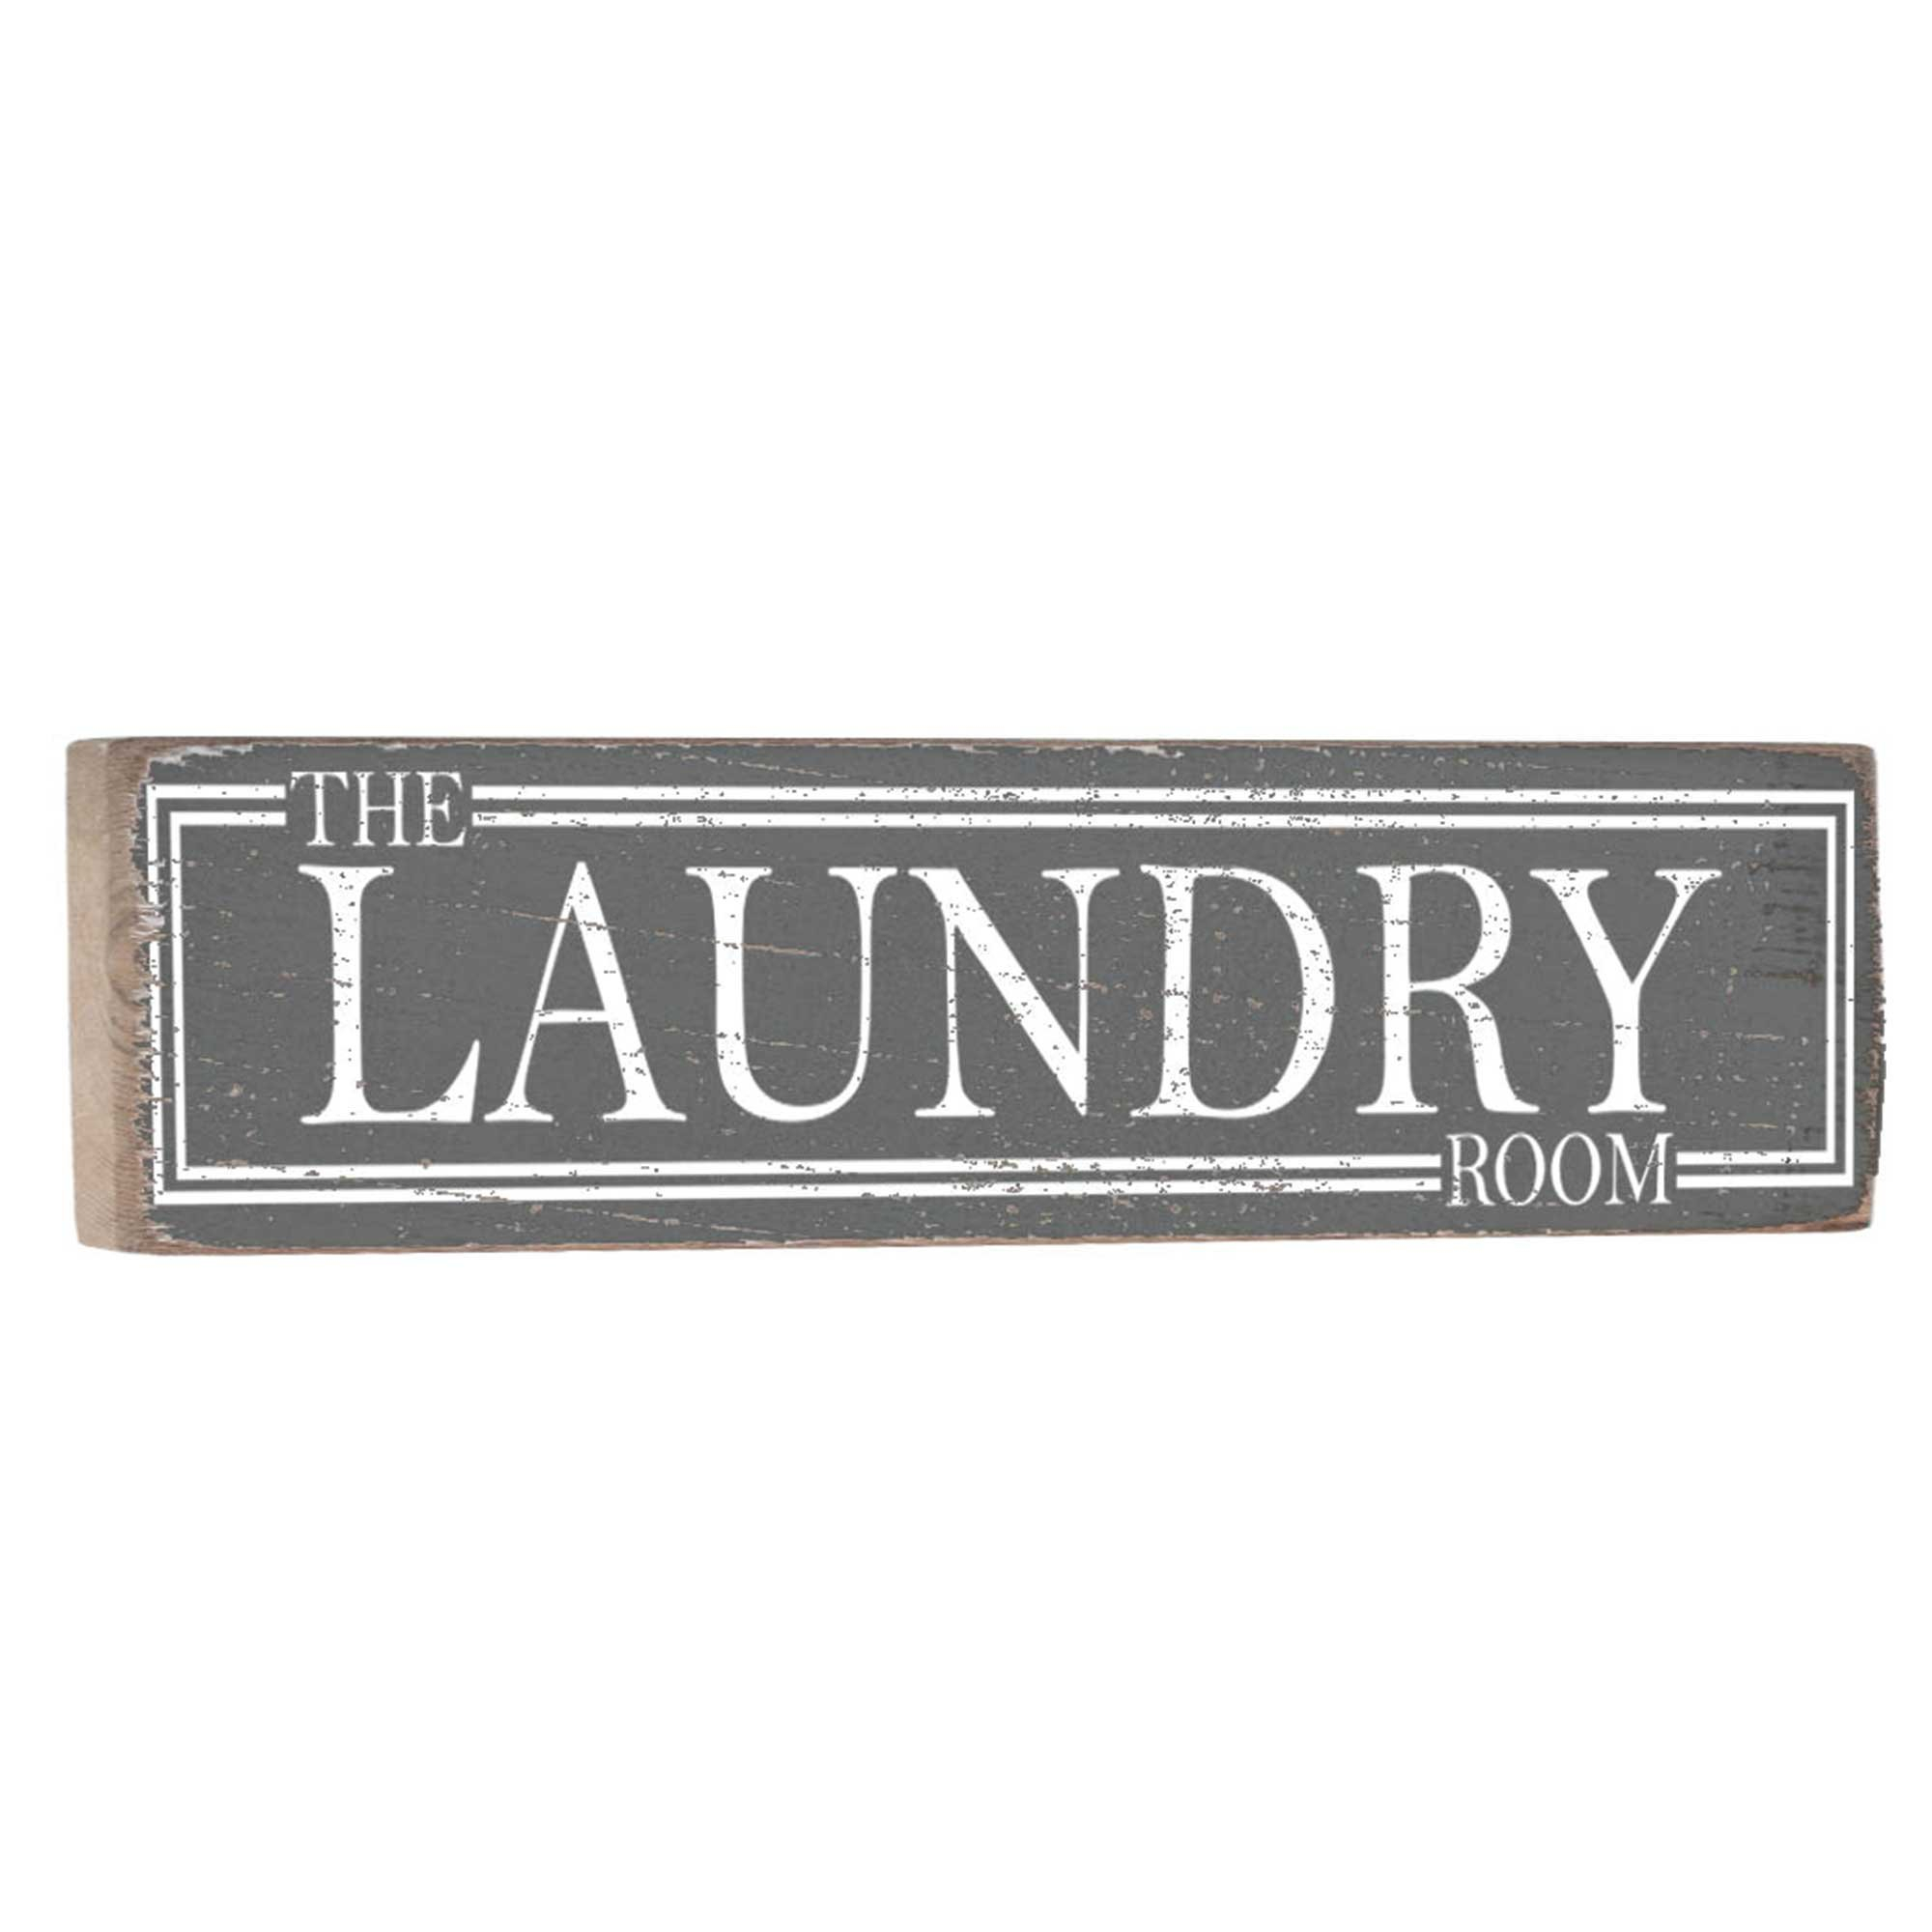 Most Recently Released The Laundry Room Wall Décor & Reviews (View 13 of 20)